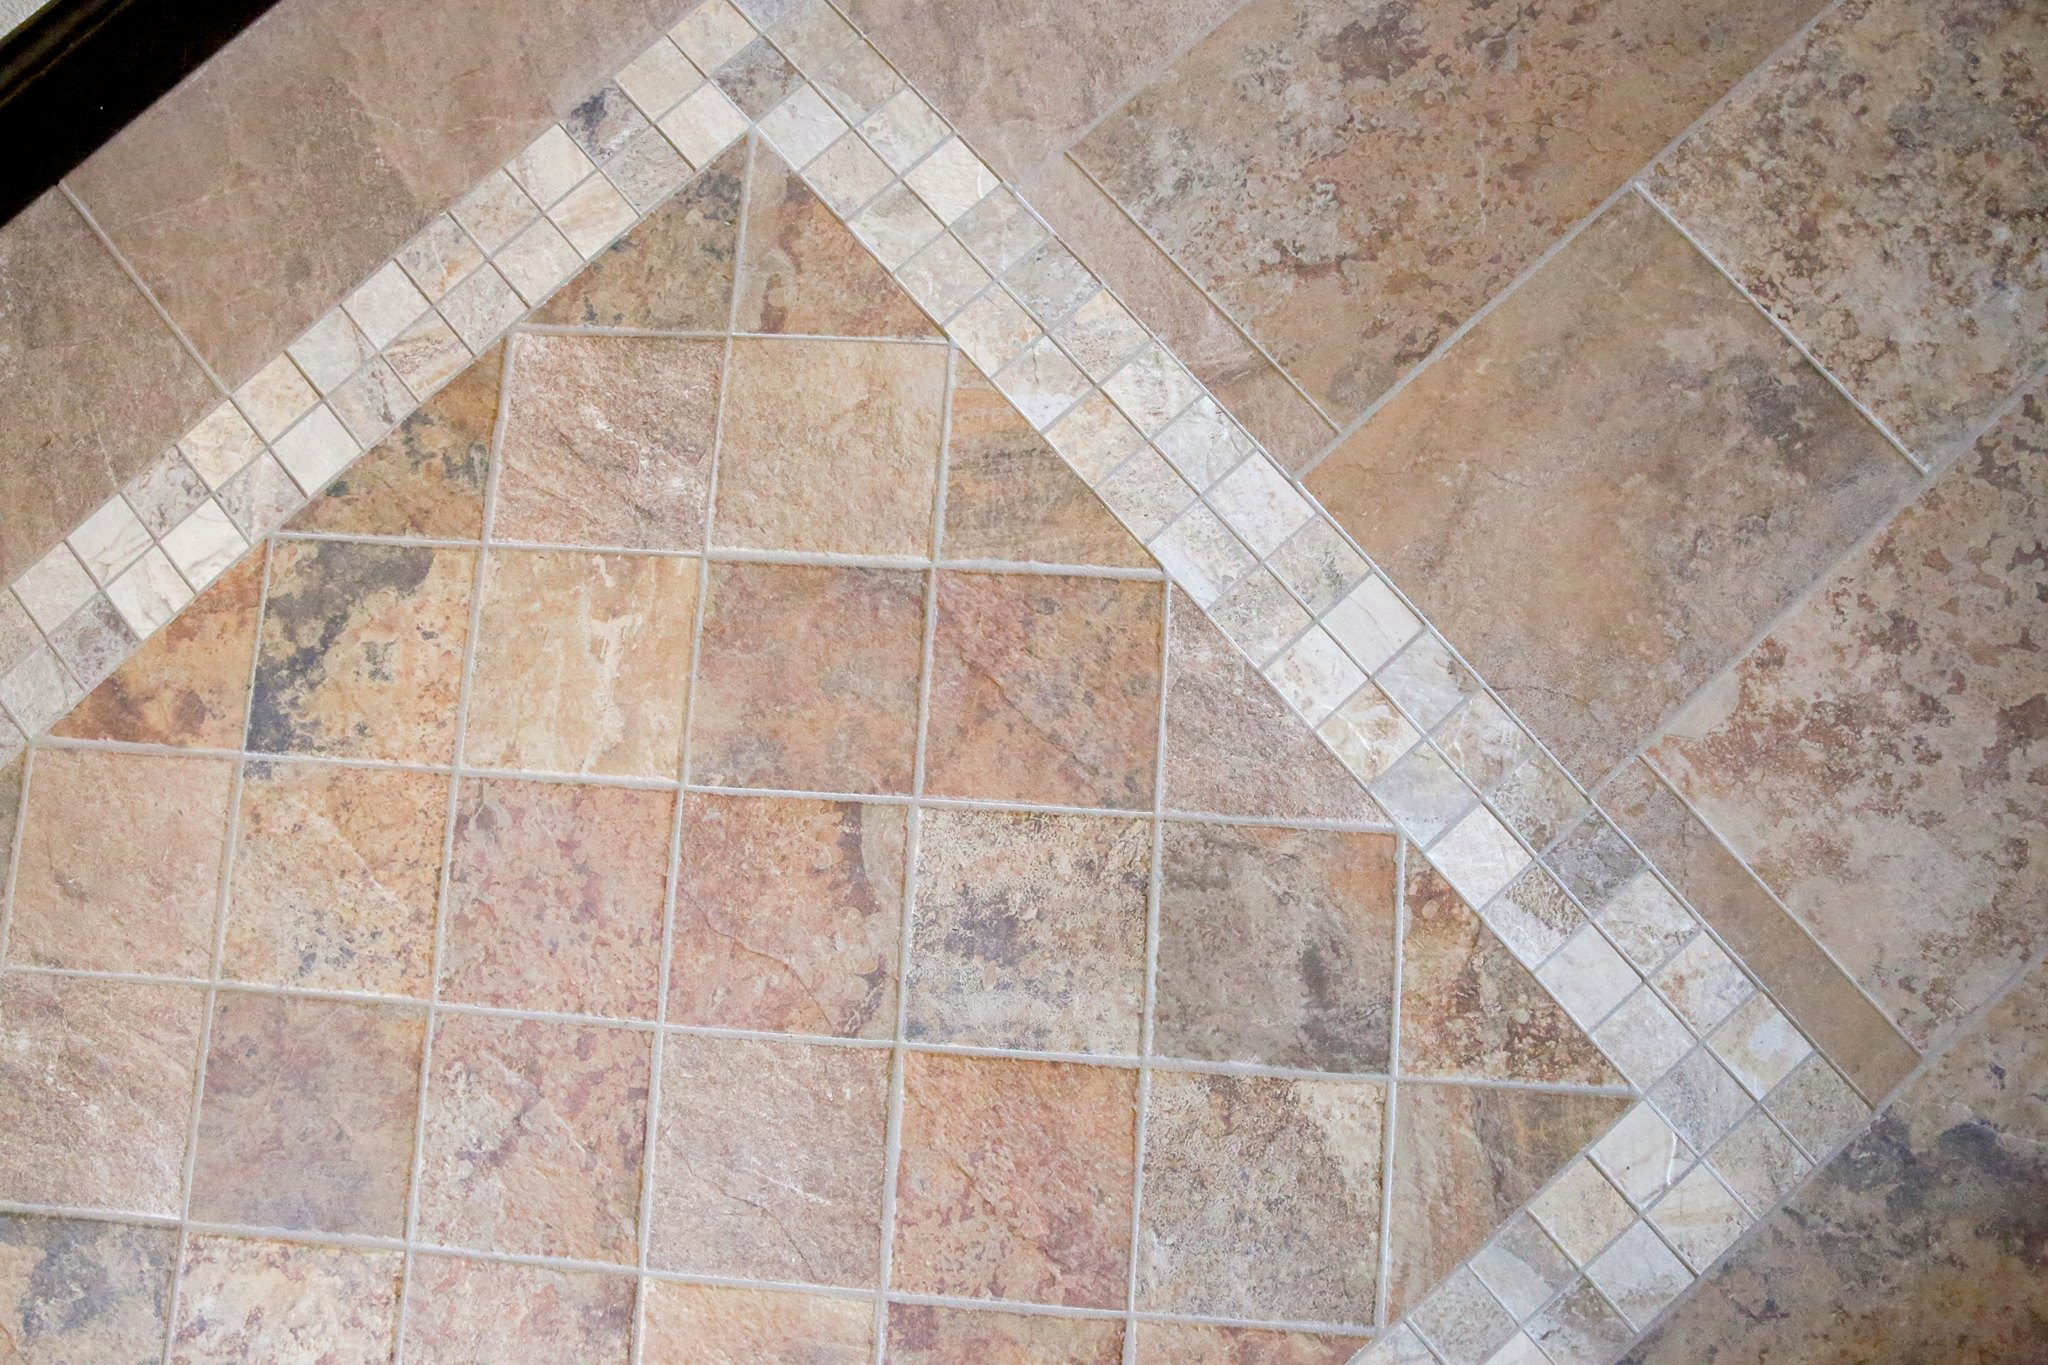 Interior Images Sheridan Wy 82801 Tile Gallerystore